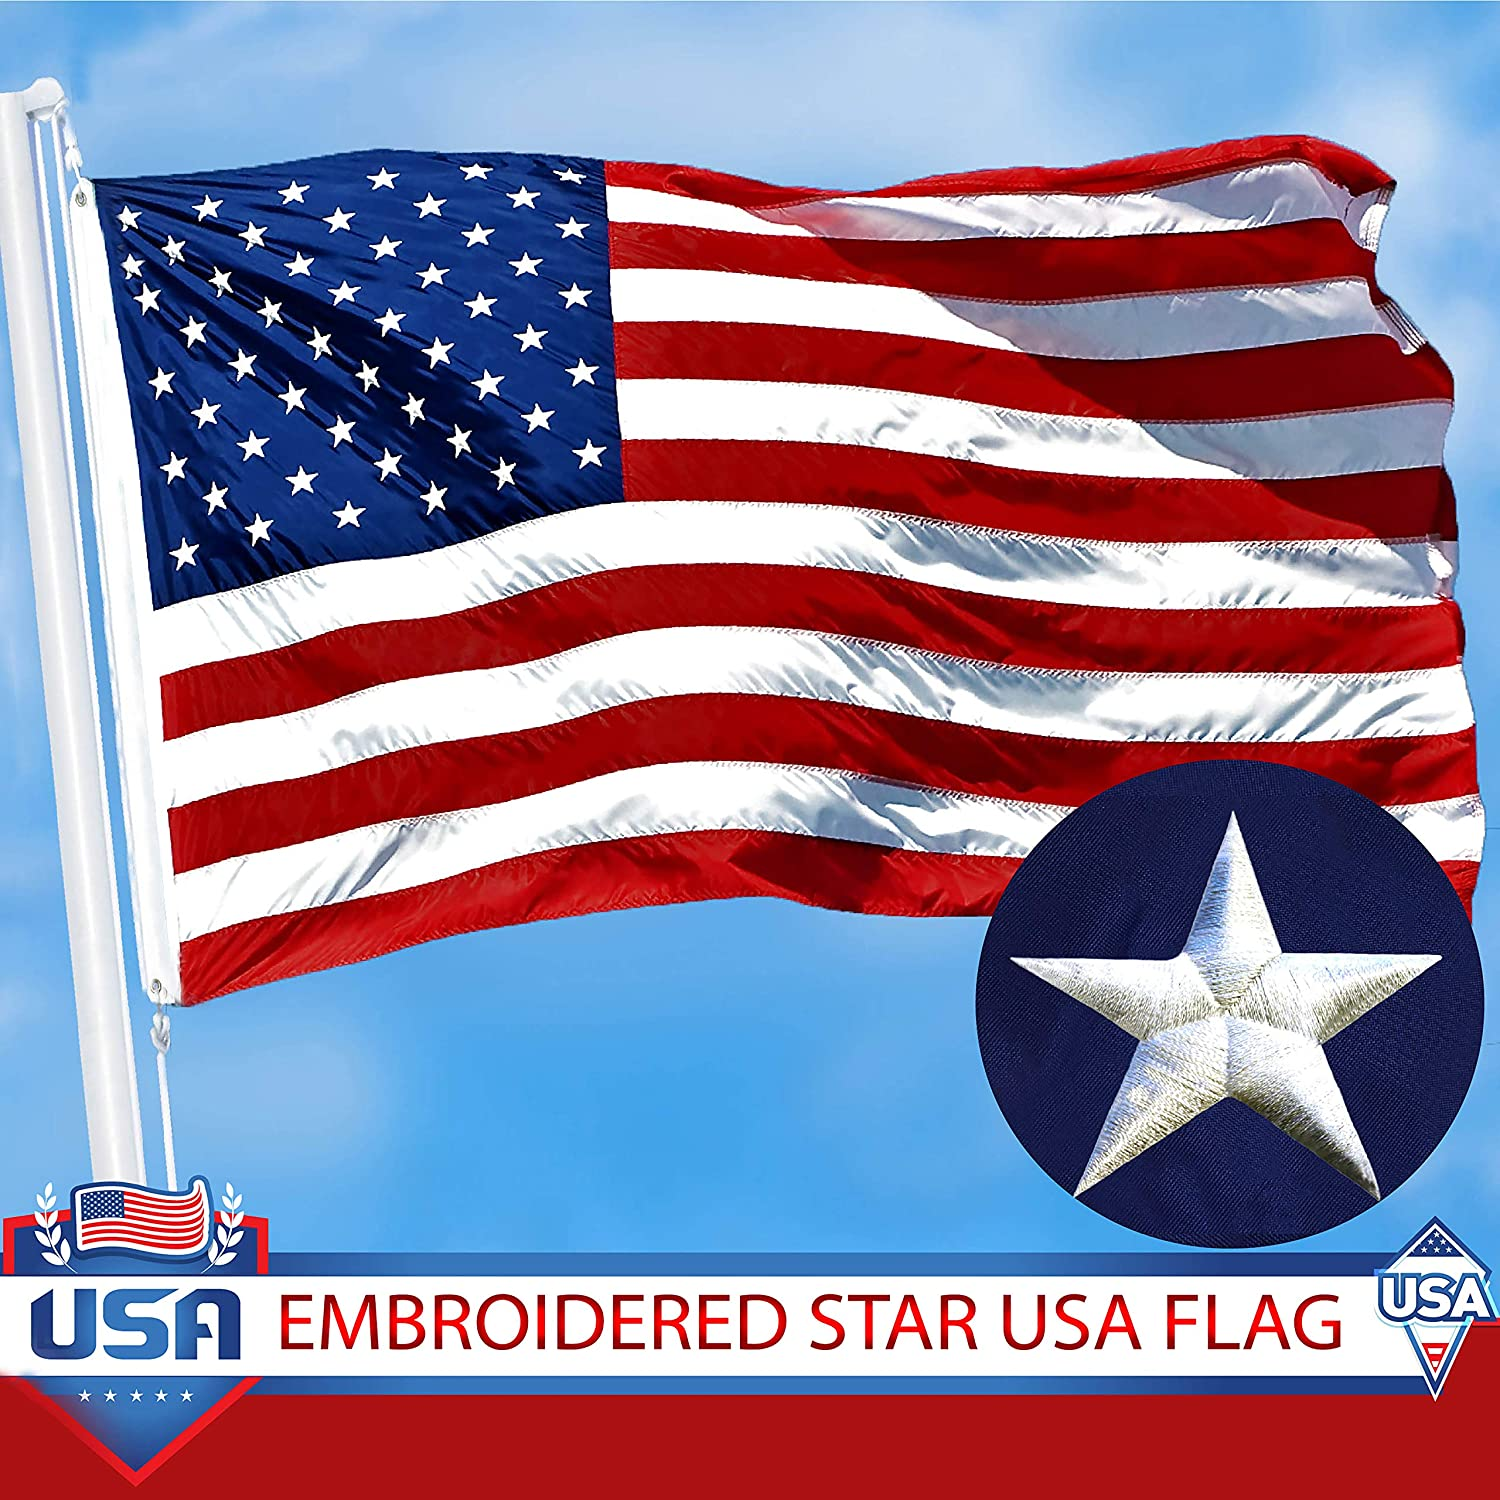 United States of America USA Polyester 12x18 Inch Boat Flag American Banner New